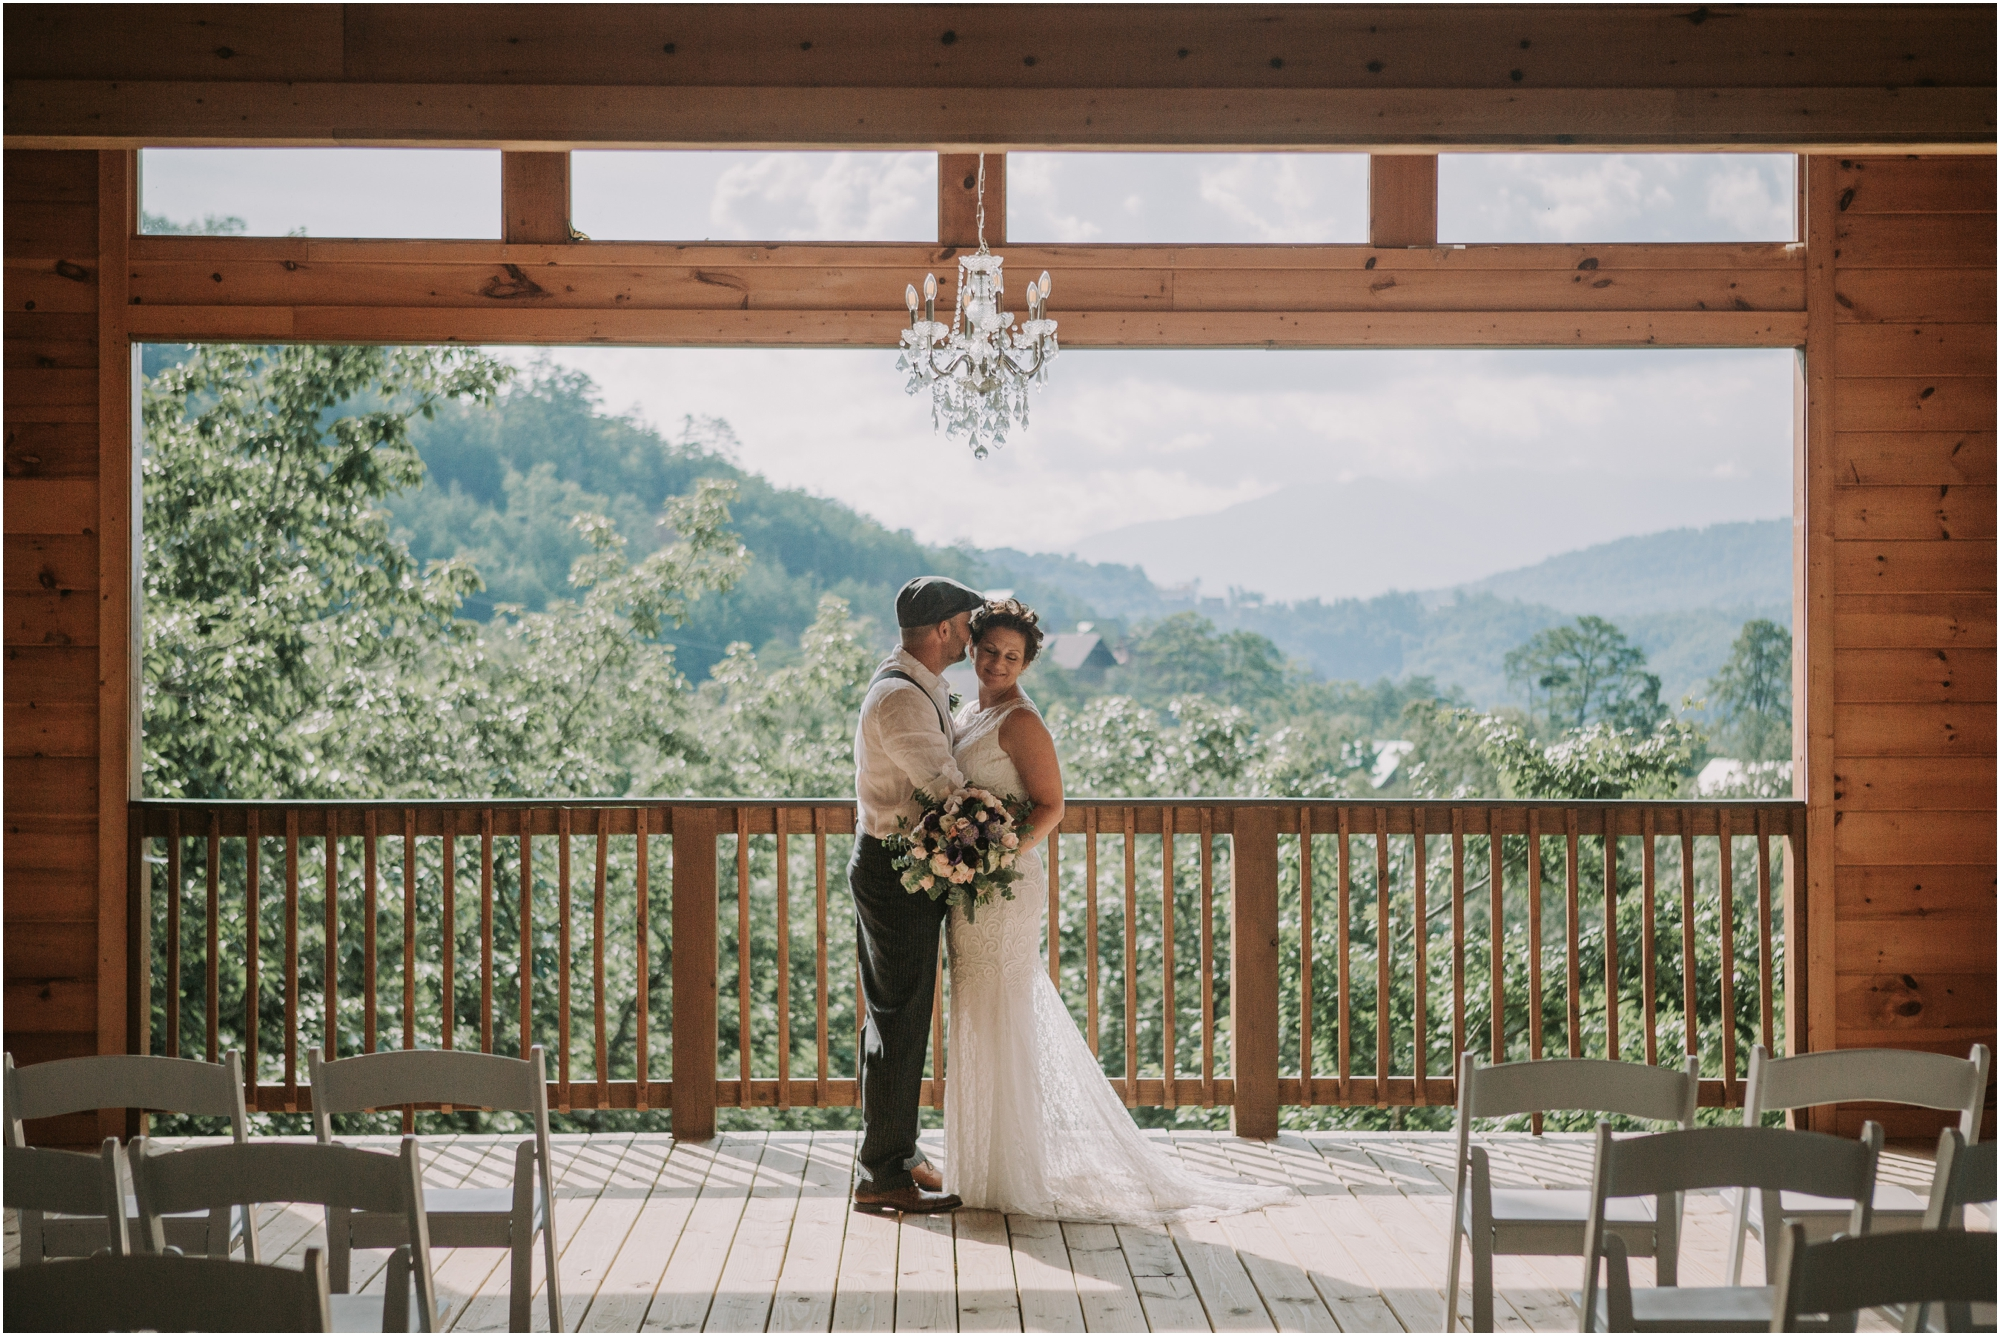 cabin-parkside-resort-the-magnolia-venue-tennessee-mountain-views-intimate-wedding_0071.jpg